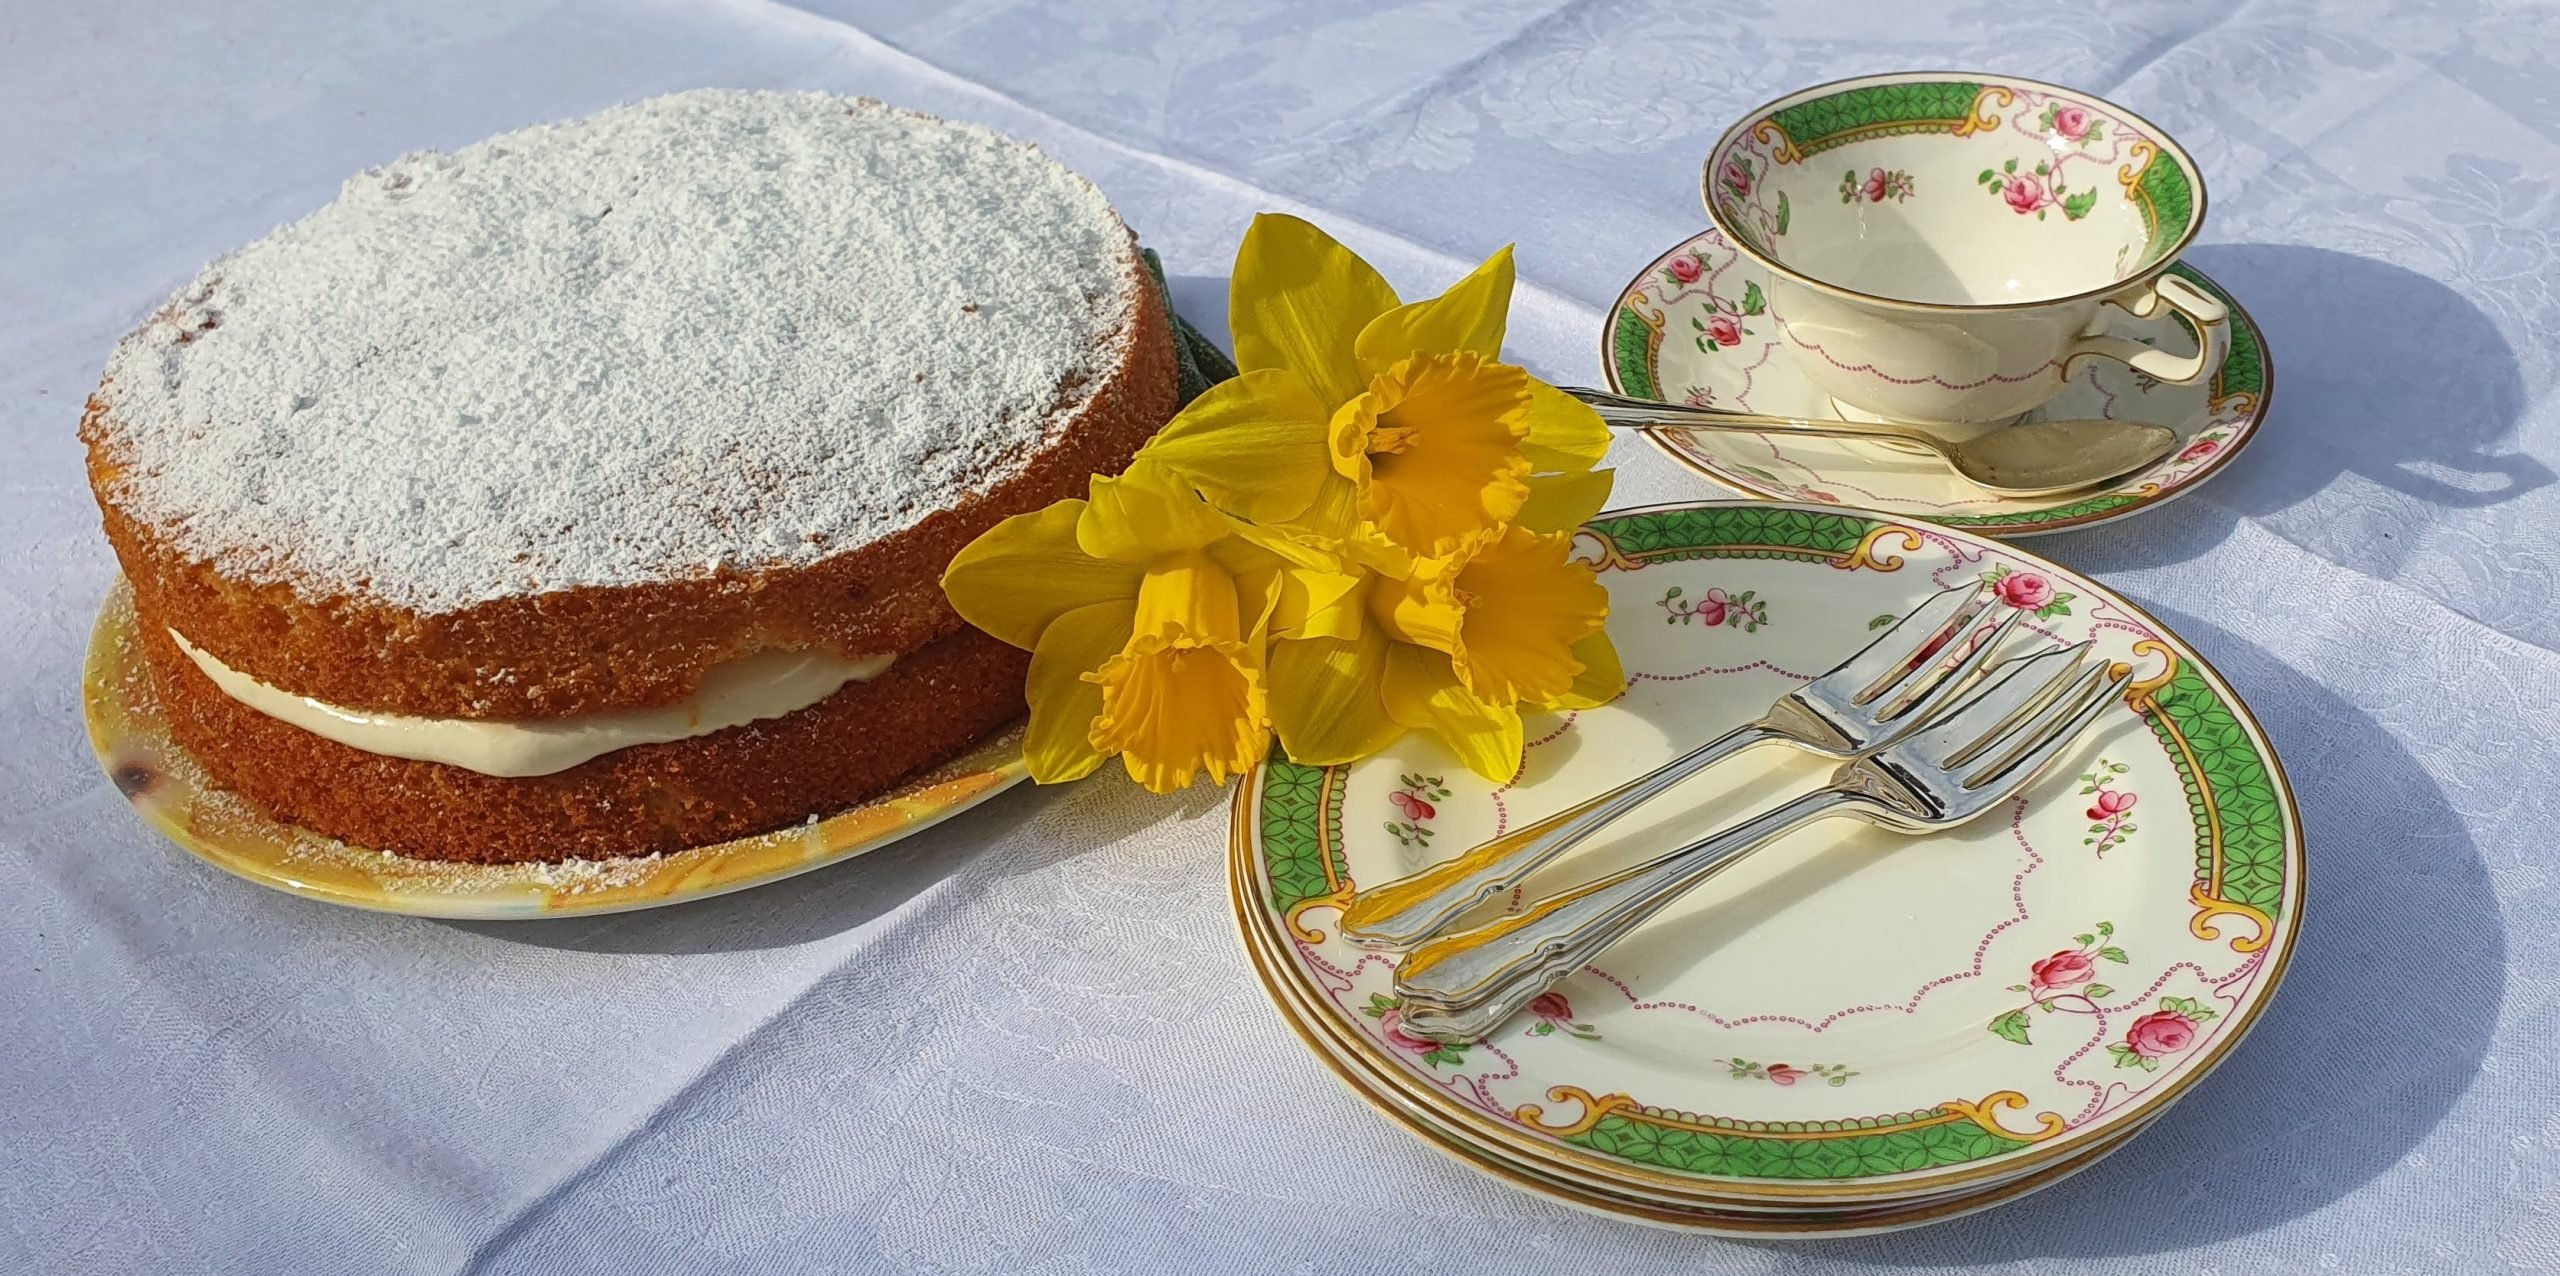 Lemon cake decorated with a daffodil, with plates and cups beside it